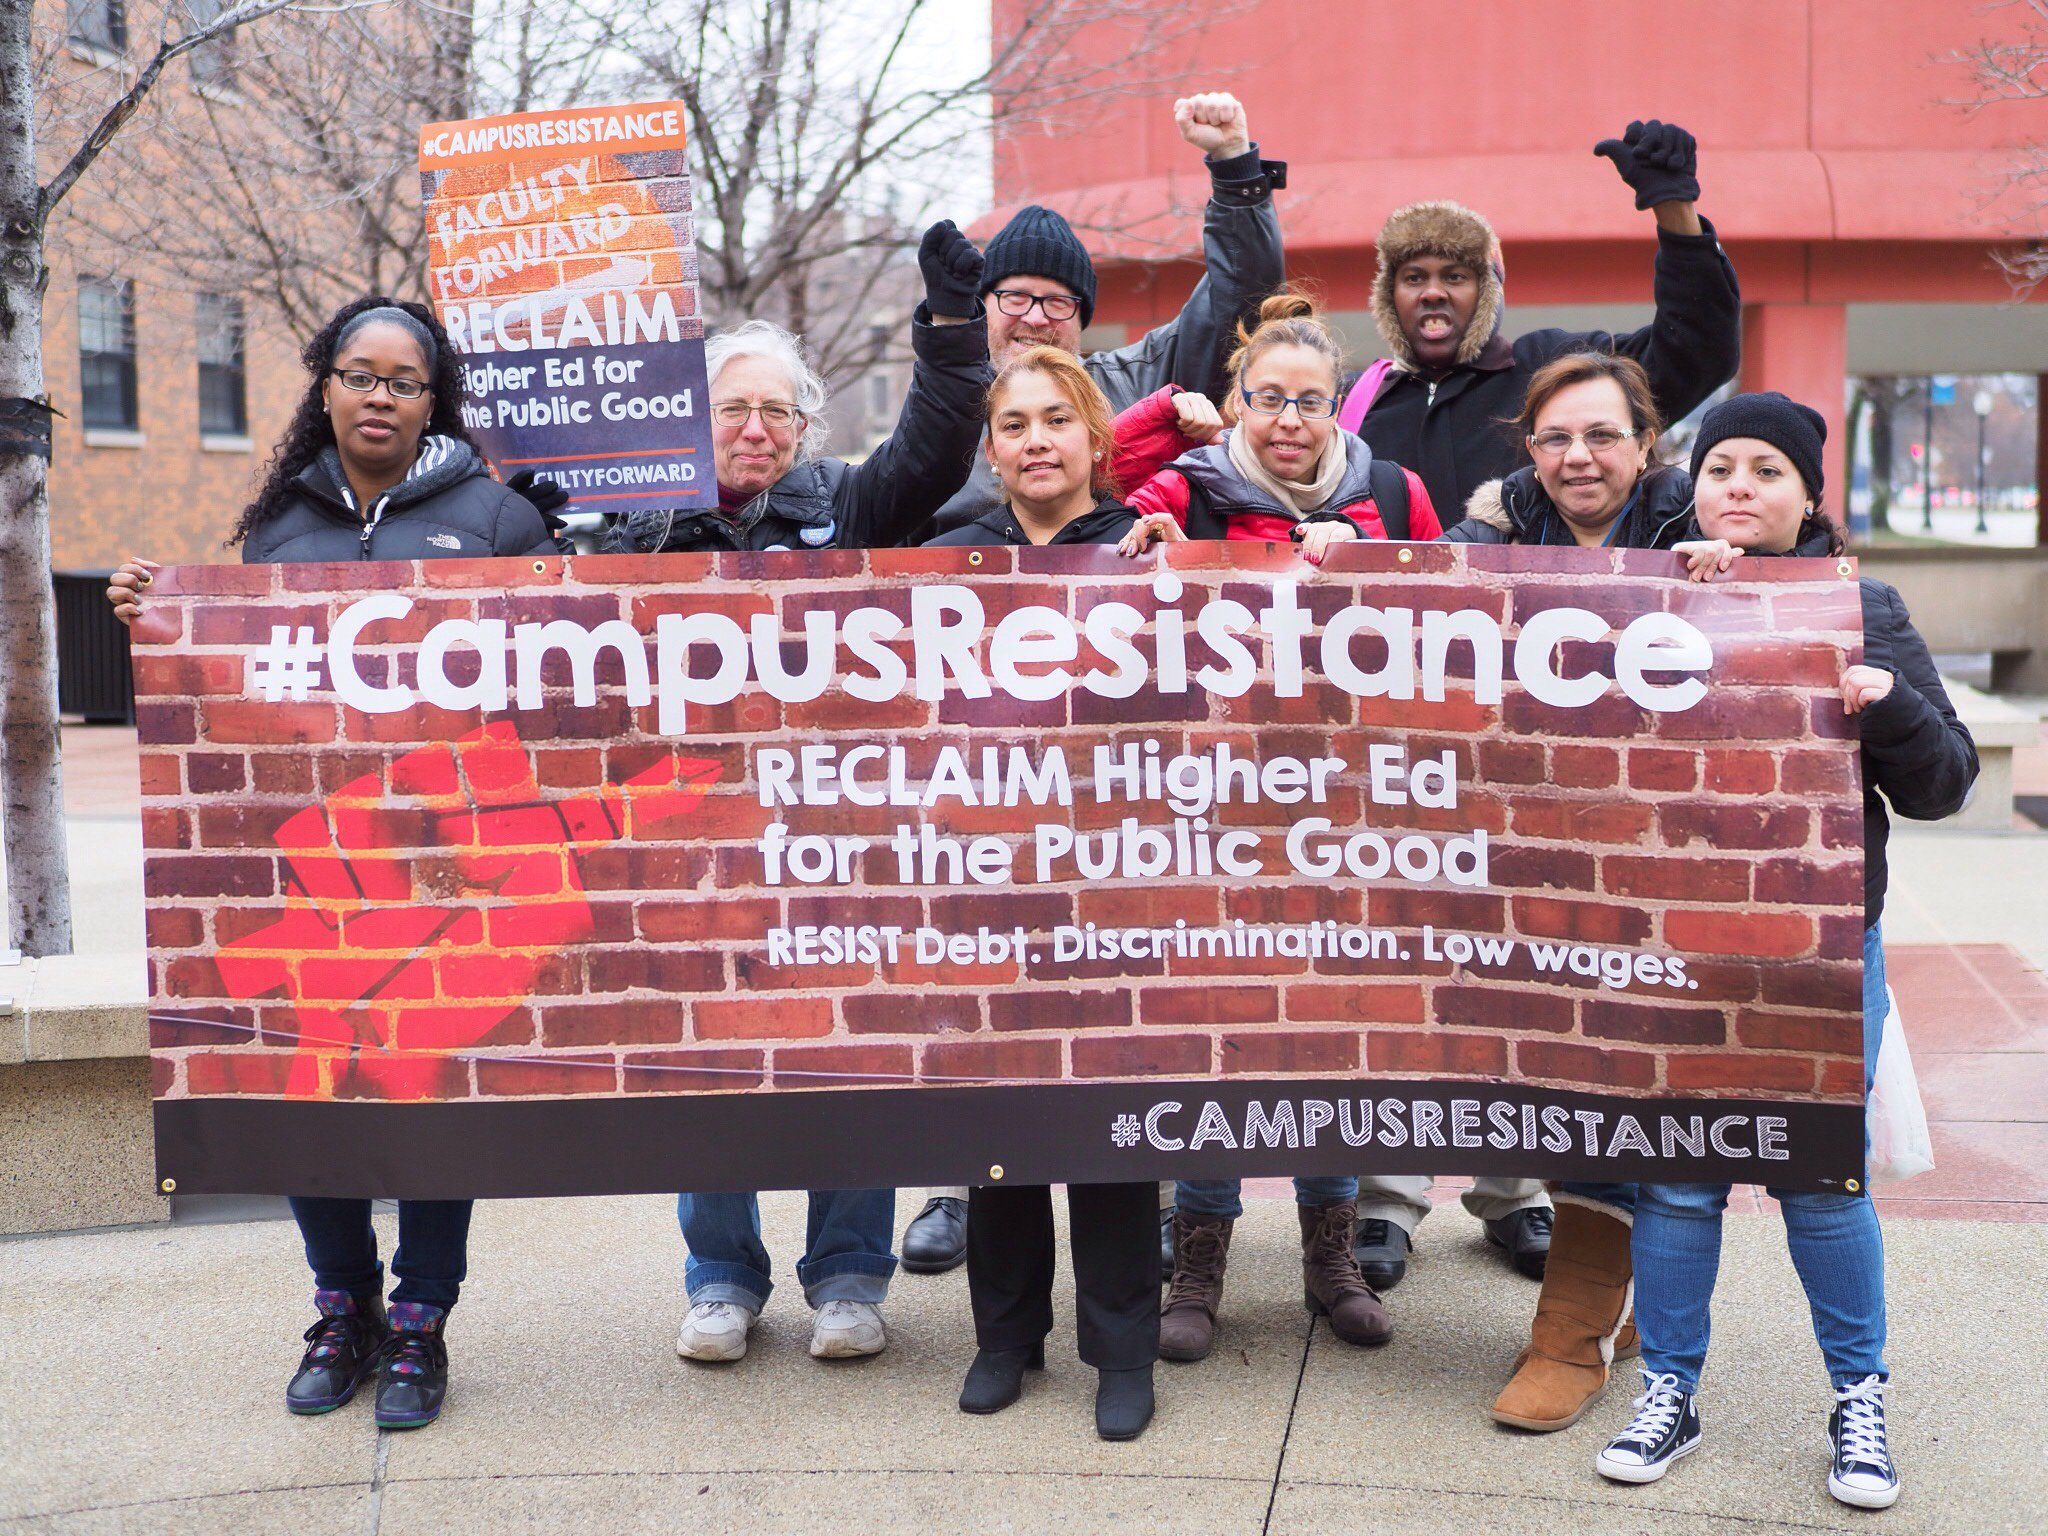 The #CampusResistance is in full swing! Faculty, students and allies from 80+ colleges and universities are standing up for #HigherEd. https://t.co/O9VPDyKmXN